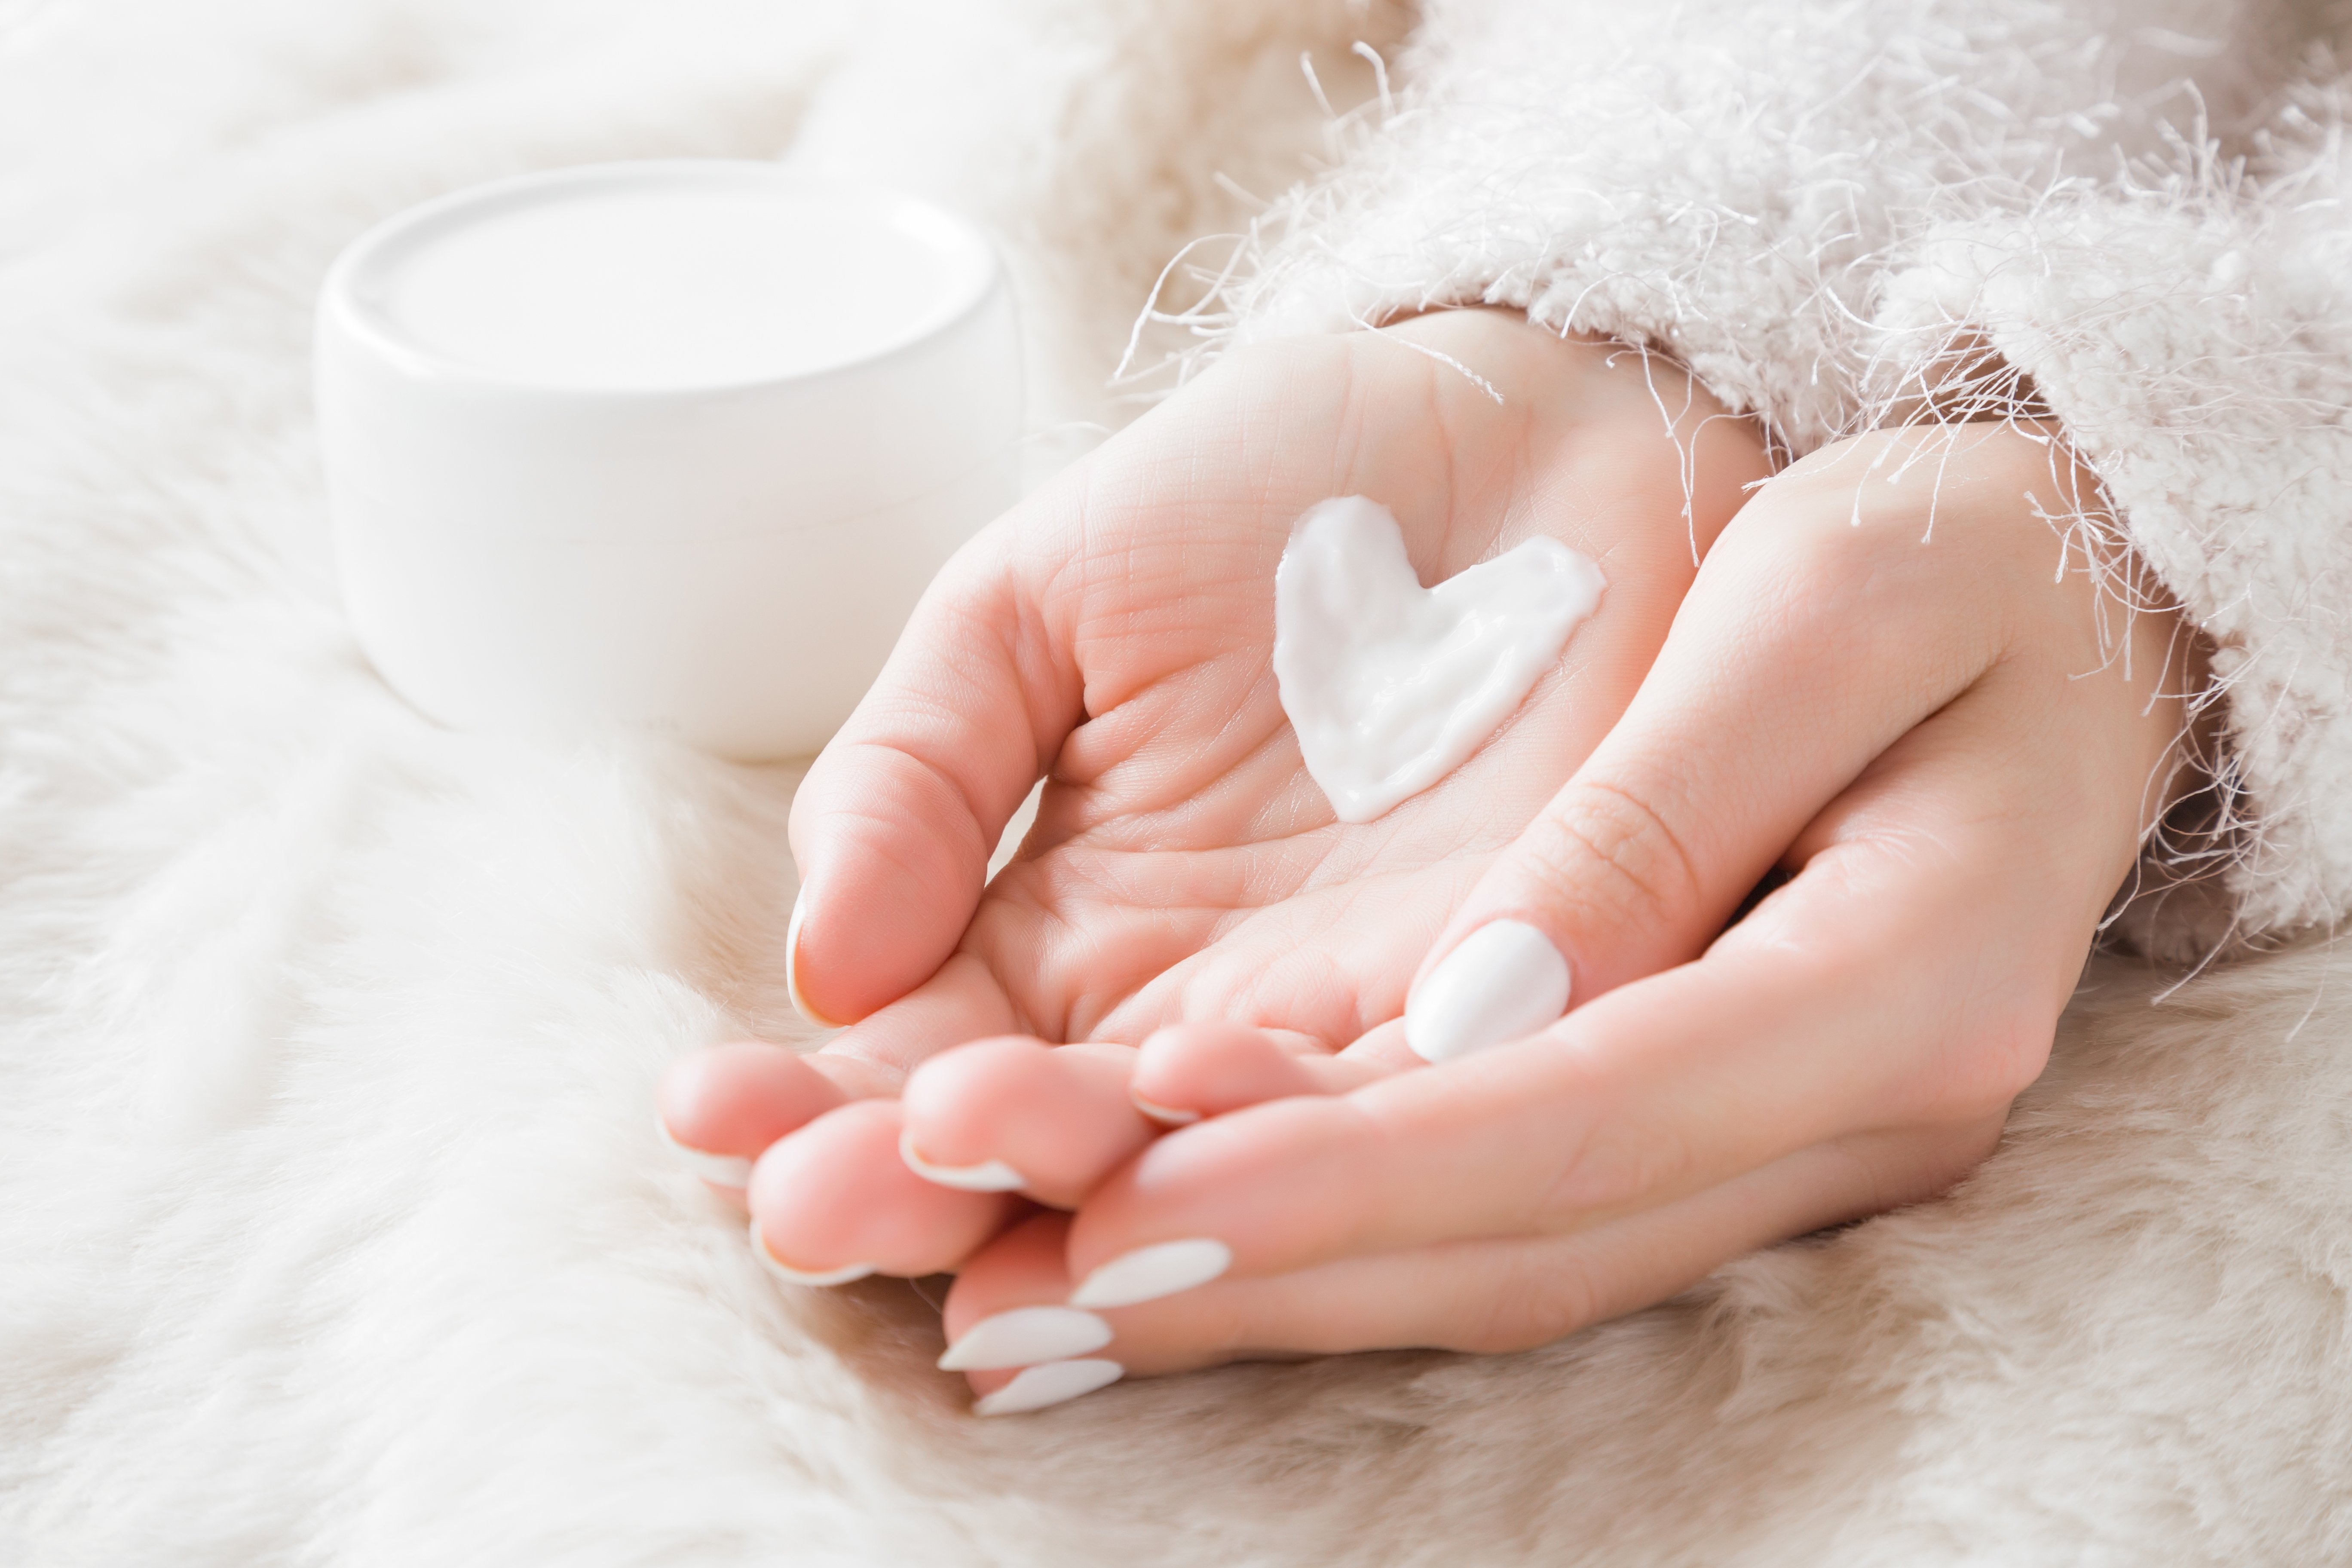 Hands filled with lotion heart | Shutterstock